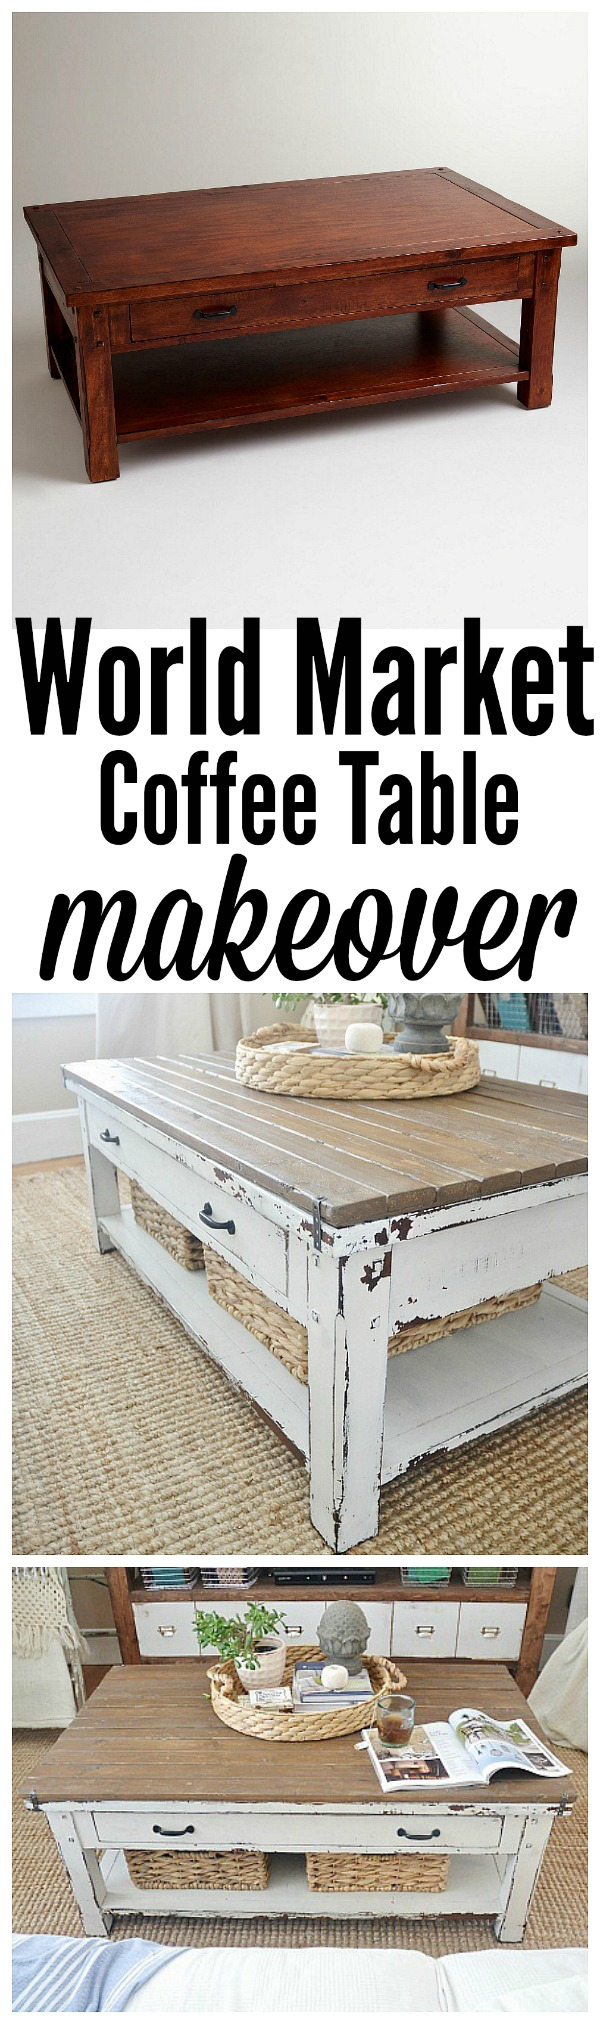 DIY World Market Coffee Table Makeover